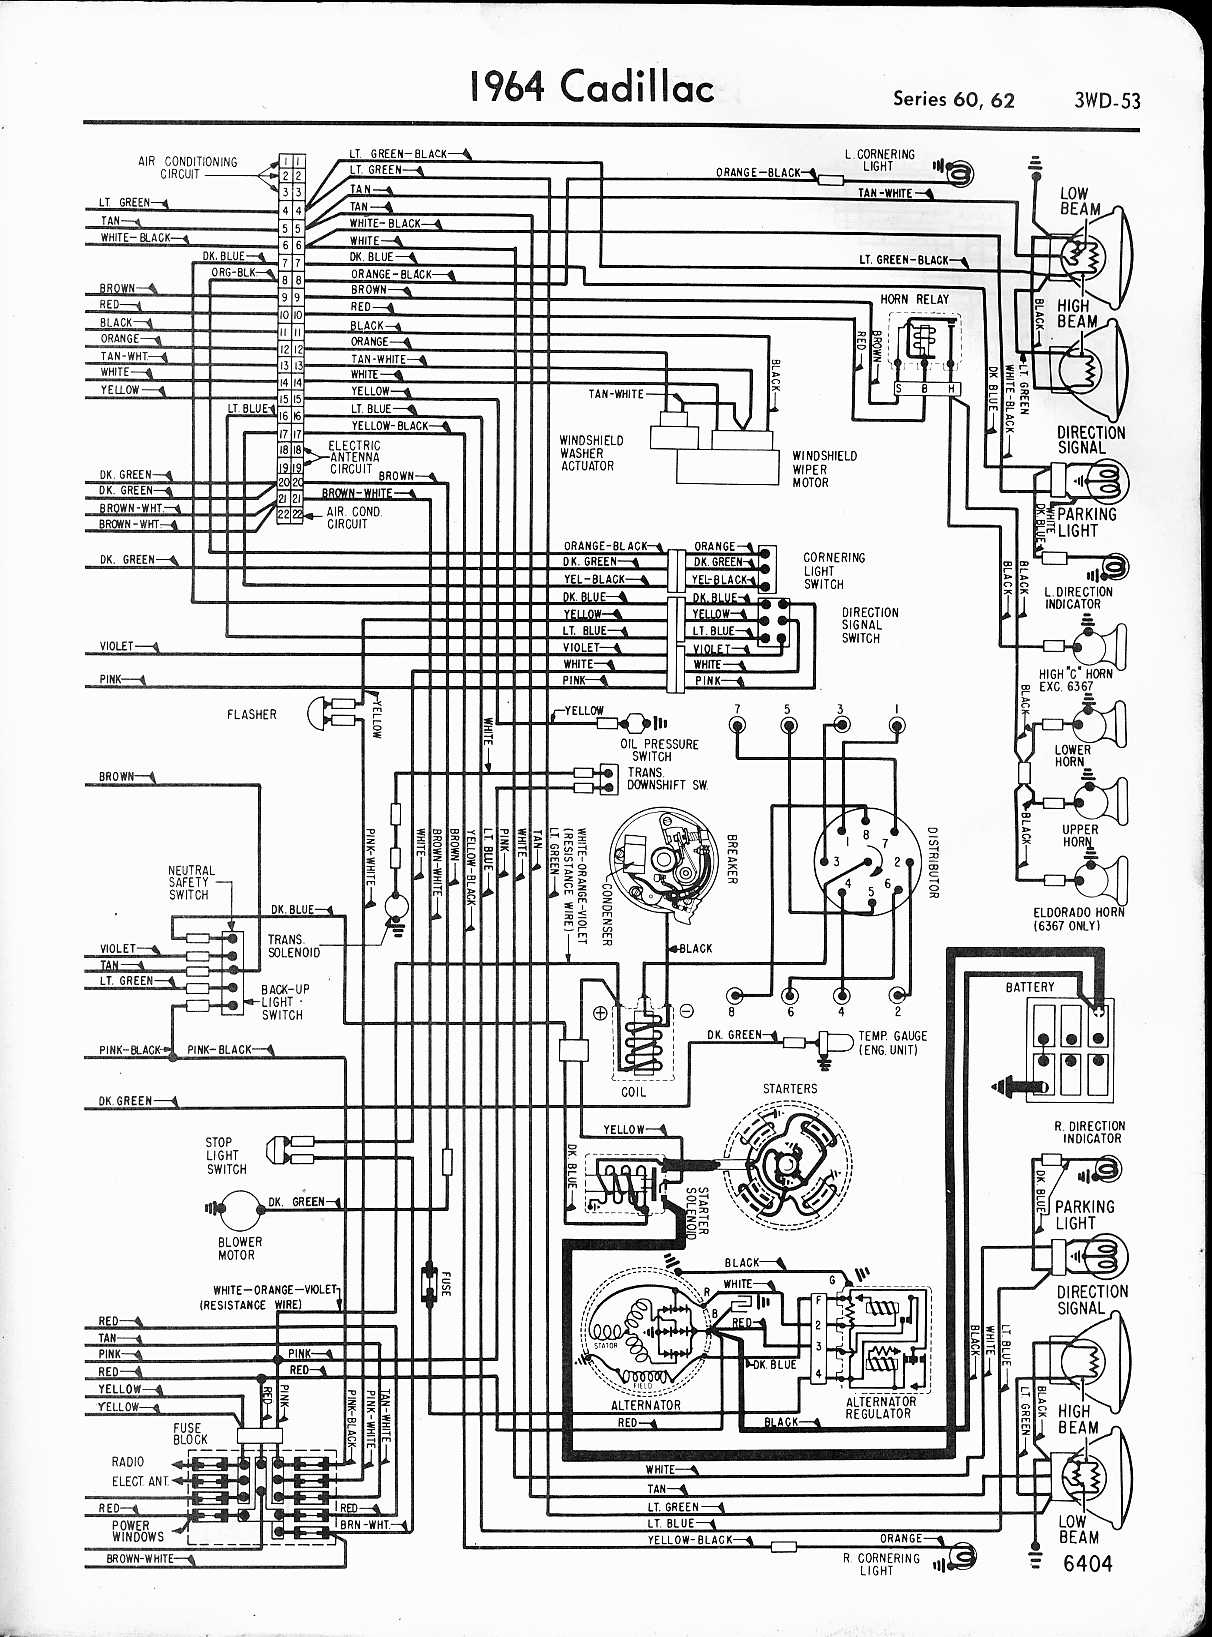 [SCHEMATICS_4UK]  Cadillac Ac Wiring Diagram - With Internet Telephone Wiring Diagram for Wiring  Diagram Schematics | Cadillac Wiring Diagram Free Download Schematic |  | segay-020.ecolechassiers.fr